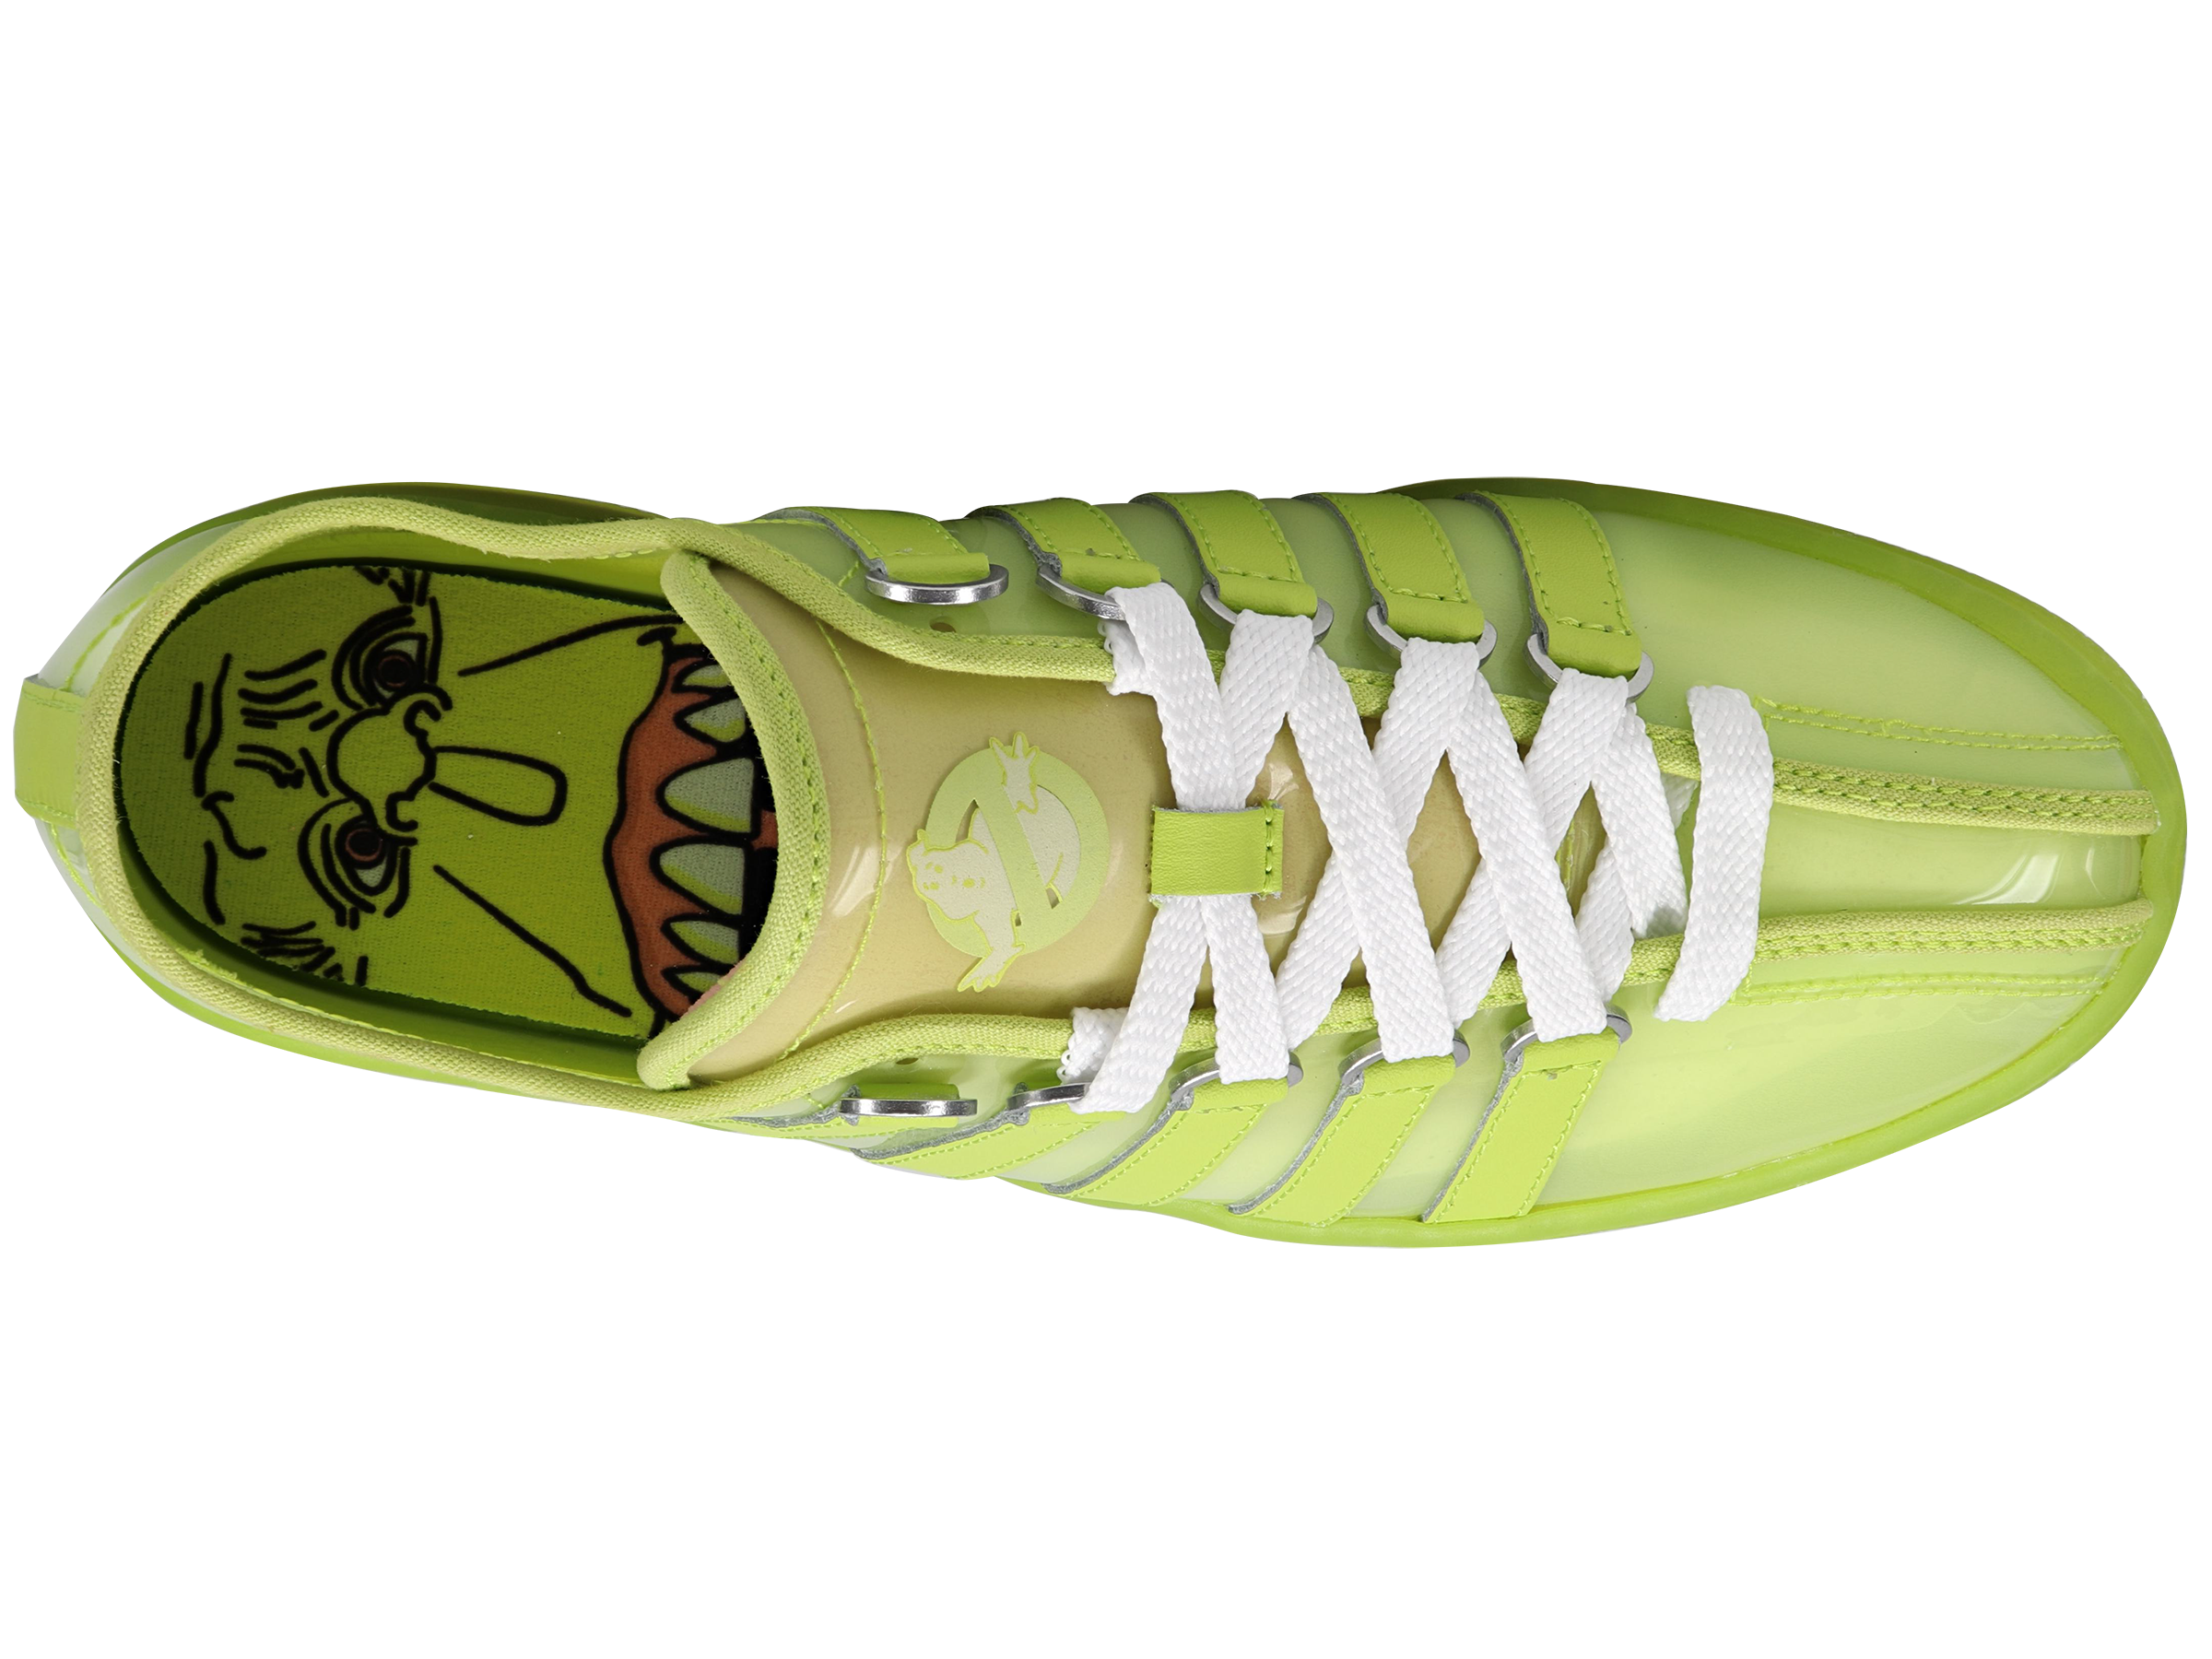 low priced ef6a2 bf249 Ghostbusters x K-Swiss Collection Commemorates 35th ...